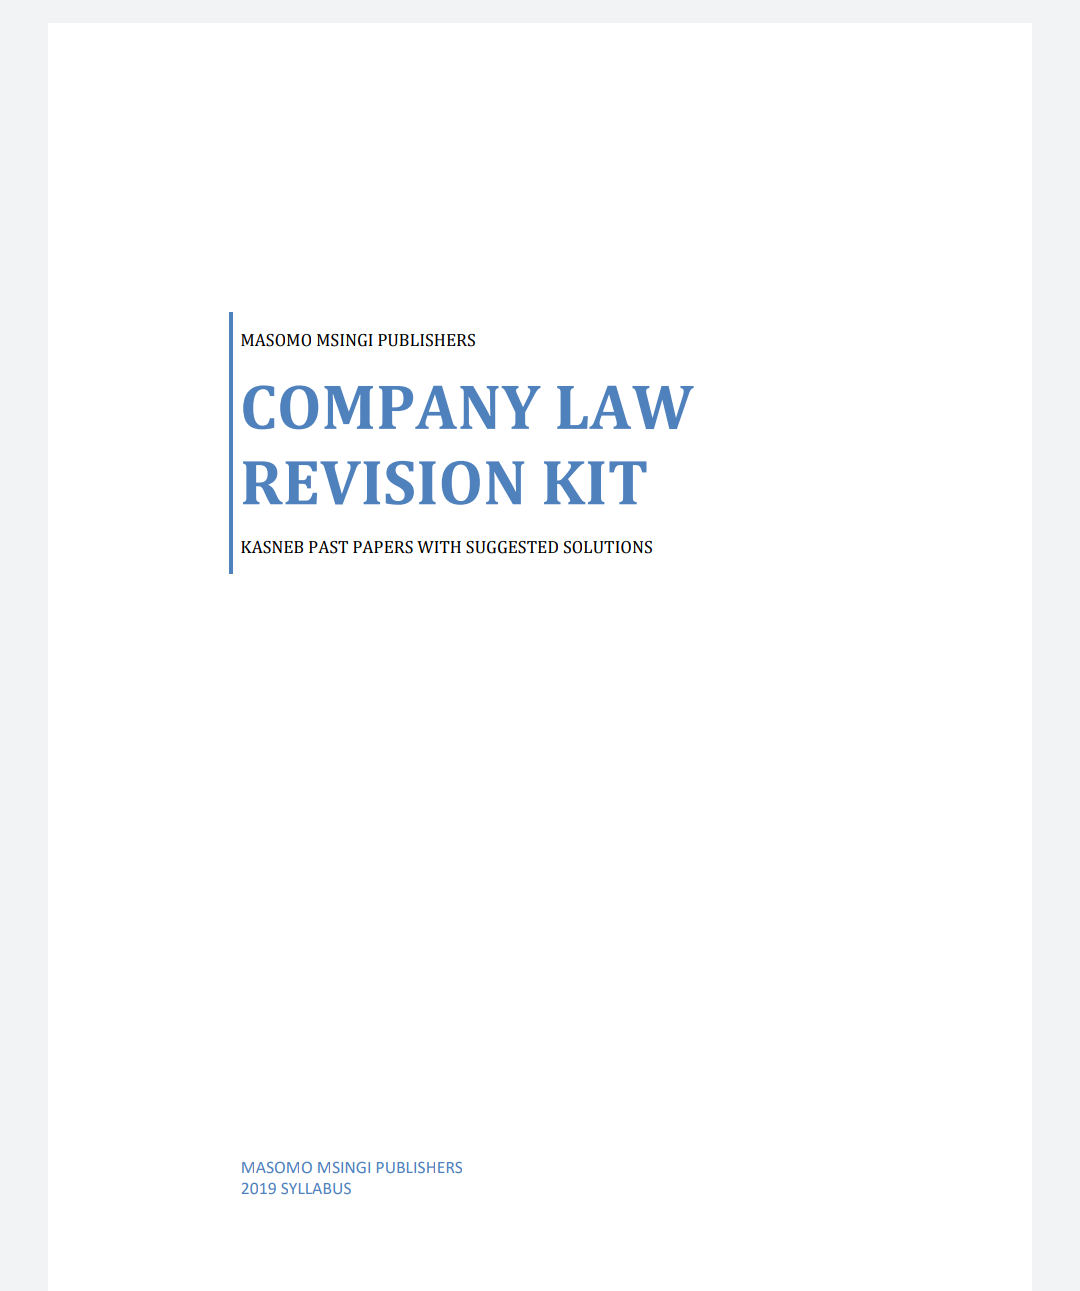 COMPANY LAW QUESTION AND ANSWER